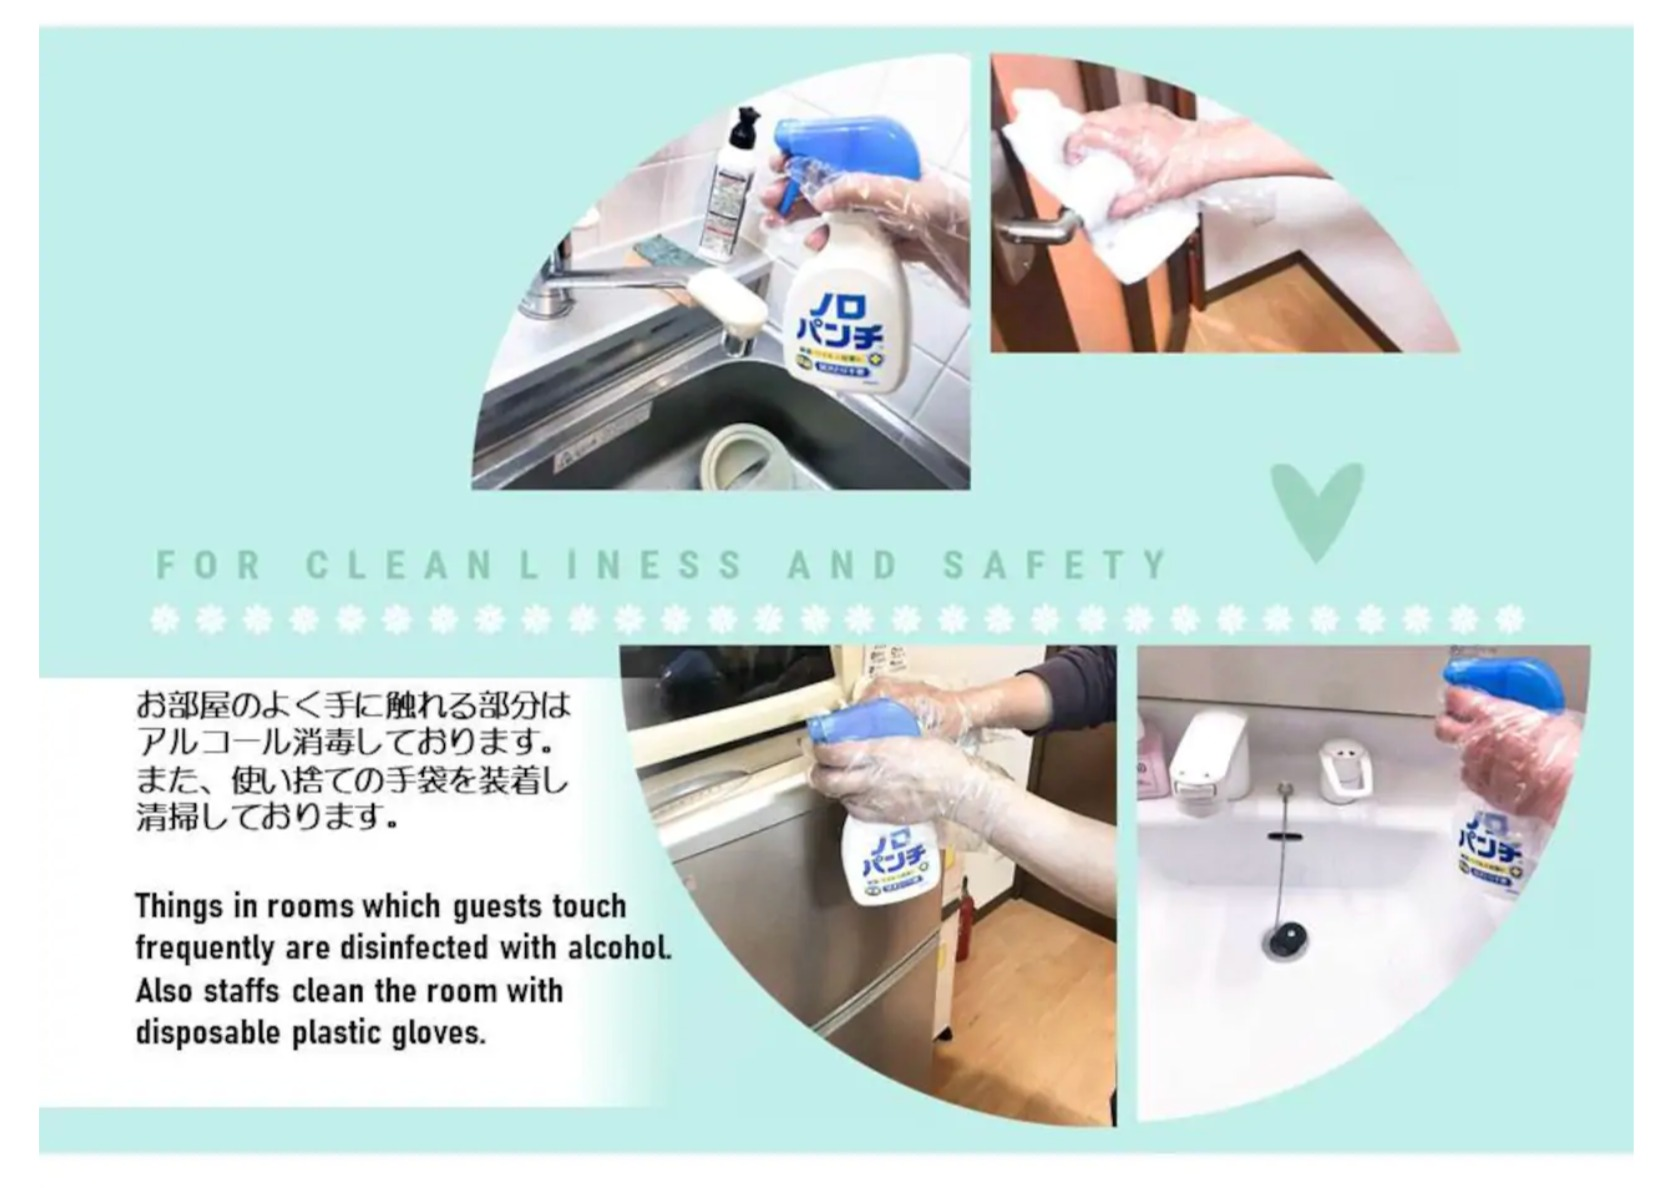 Disinfect after guests check out! ゲスト様のチェックアウト後は消毒作業を行っております。